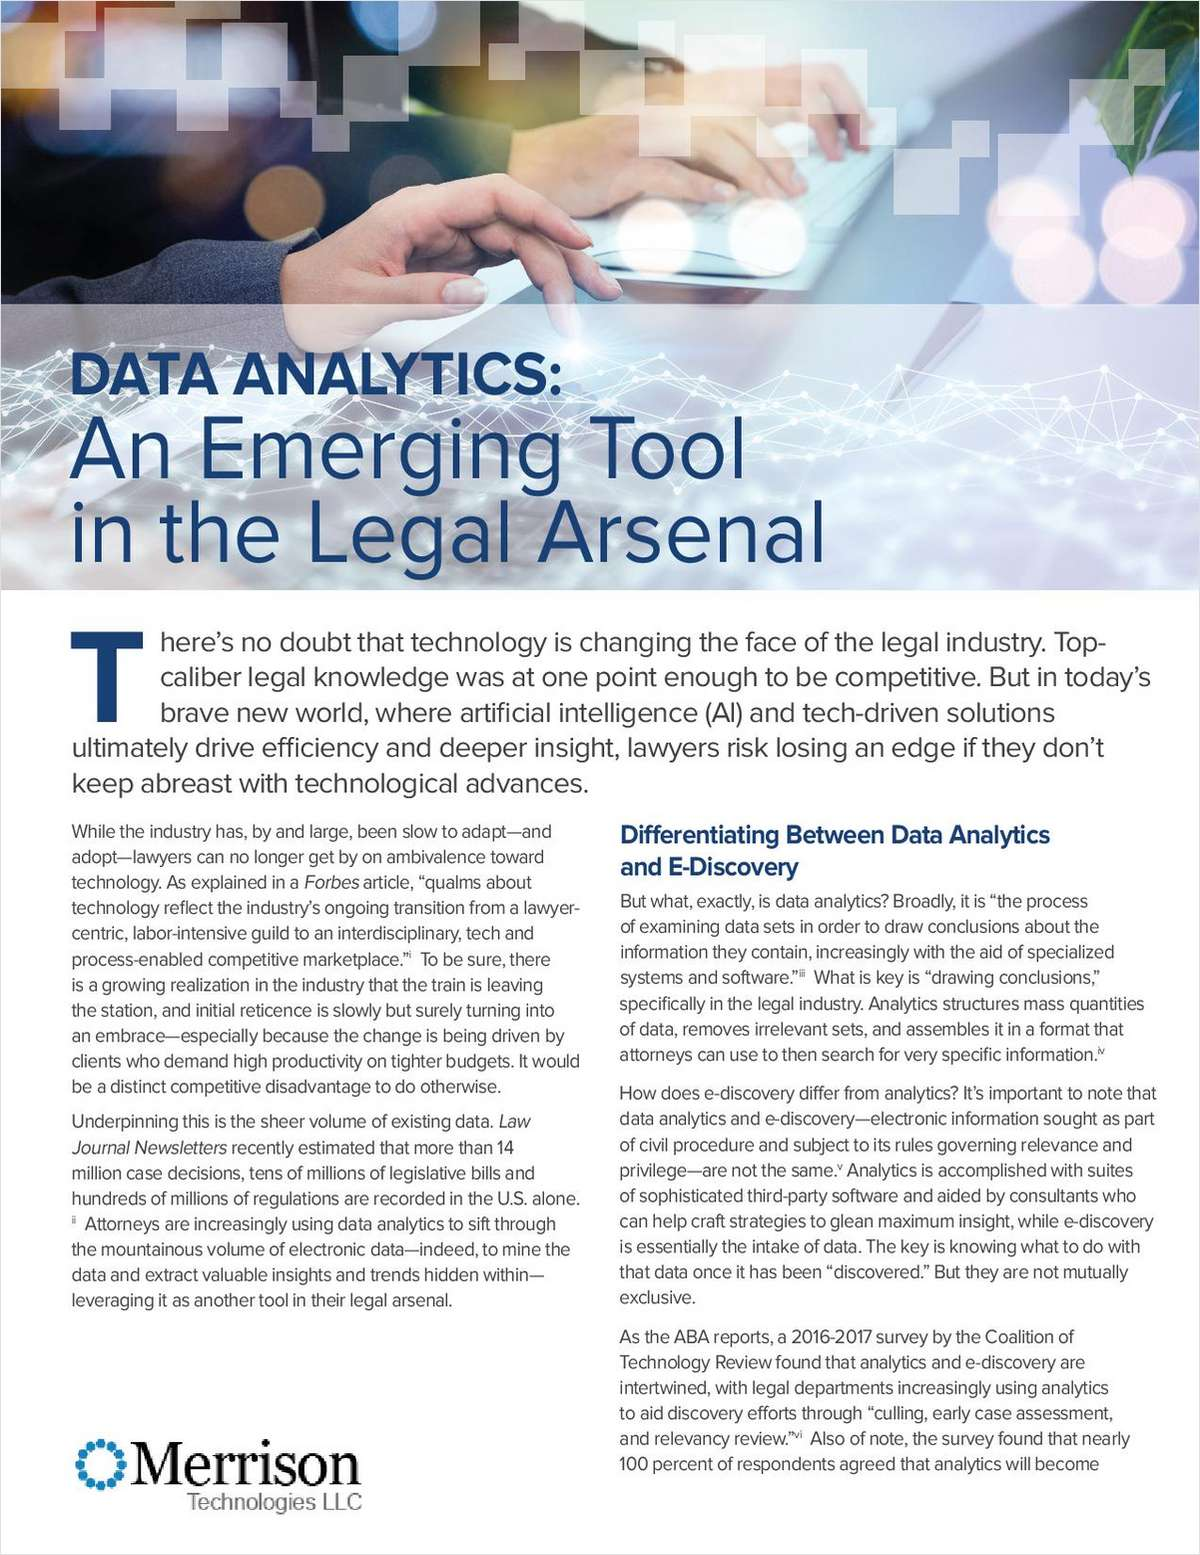 Data Analytics: An Emerging Tool in the Legal Arsenal